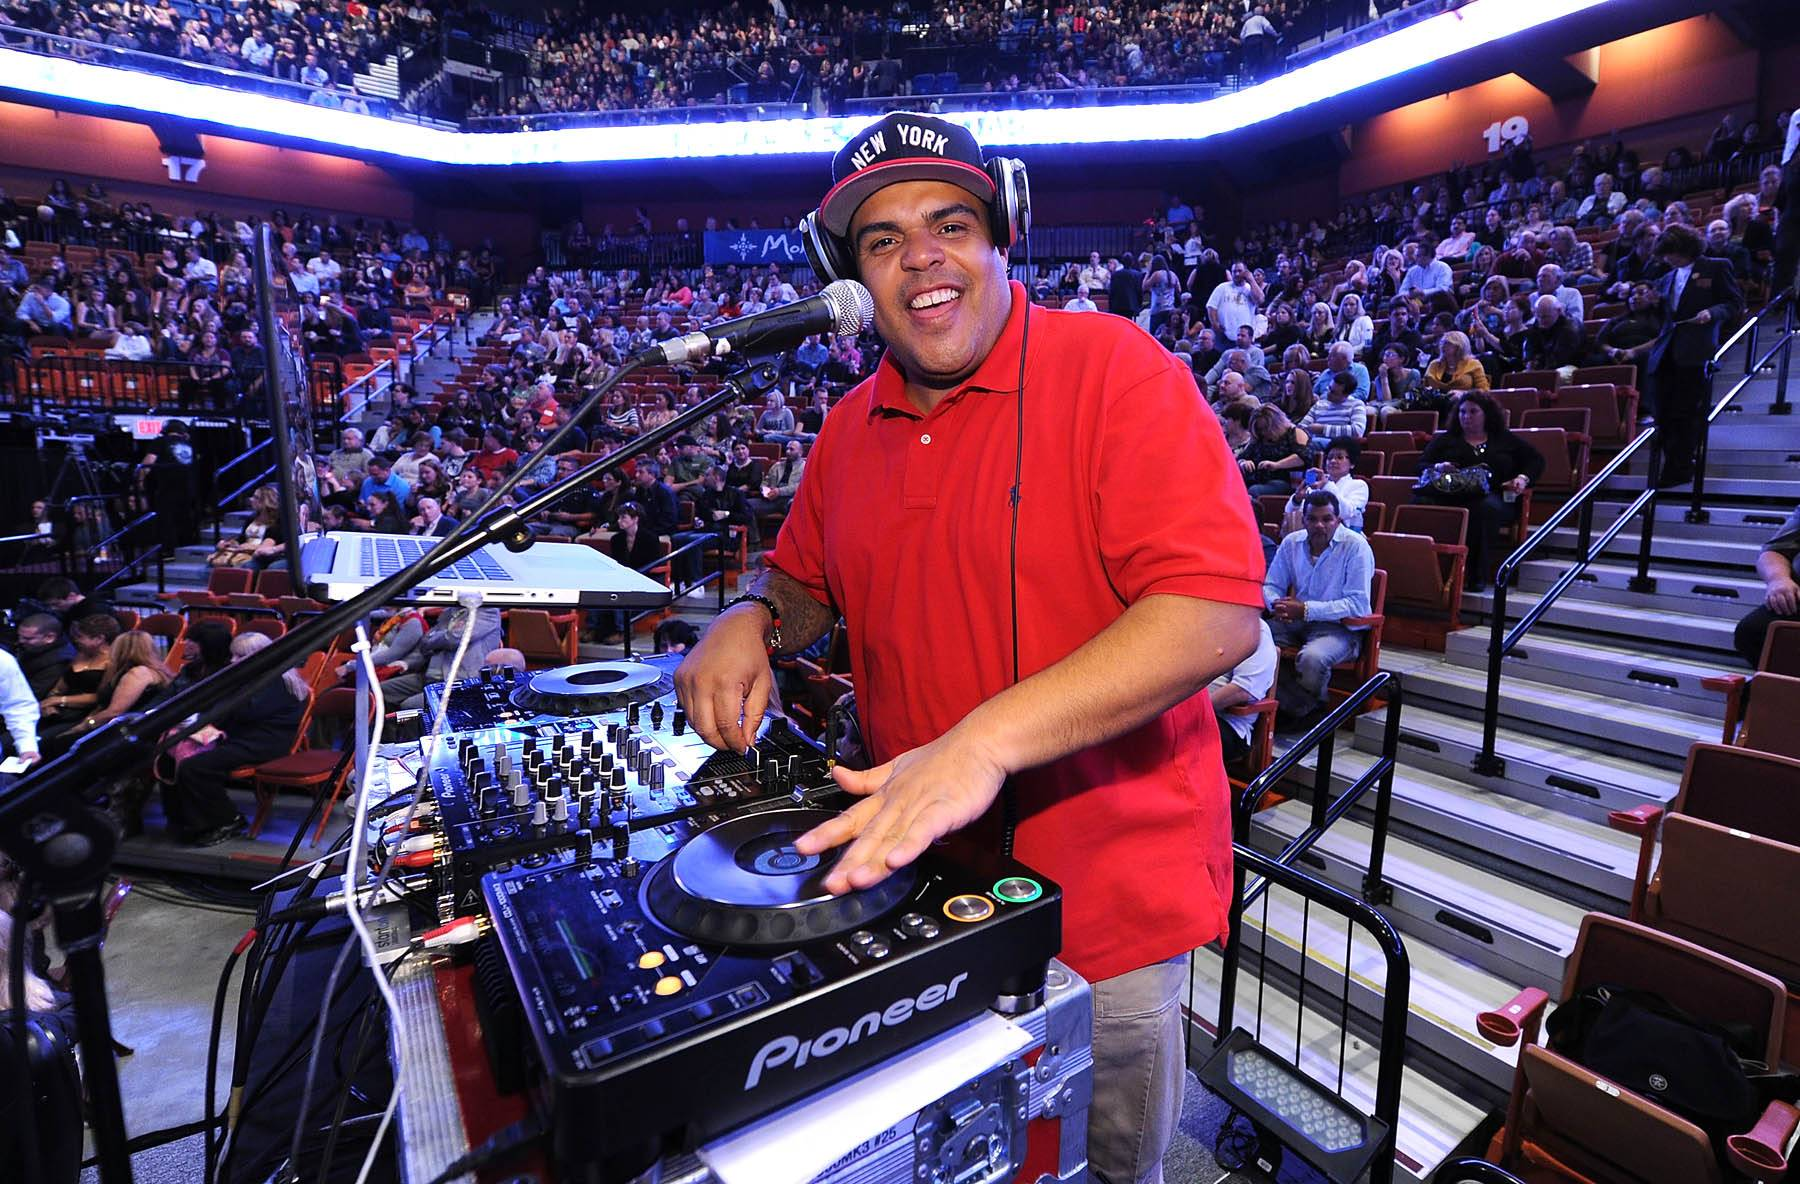 37. DJ Enuff - Brooklyn's DJ Enuff first made his name as the Notorious B.I.G.'s tour DJ, but in the years since, he's become one of the most powerful DJs at hip hop's most powerful station, Hot 97.  (Photo: Dimitrios Kambouris/WireImage for Mohegan Sun)